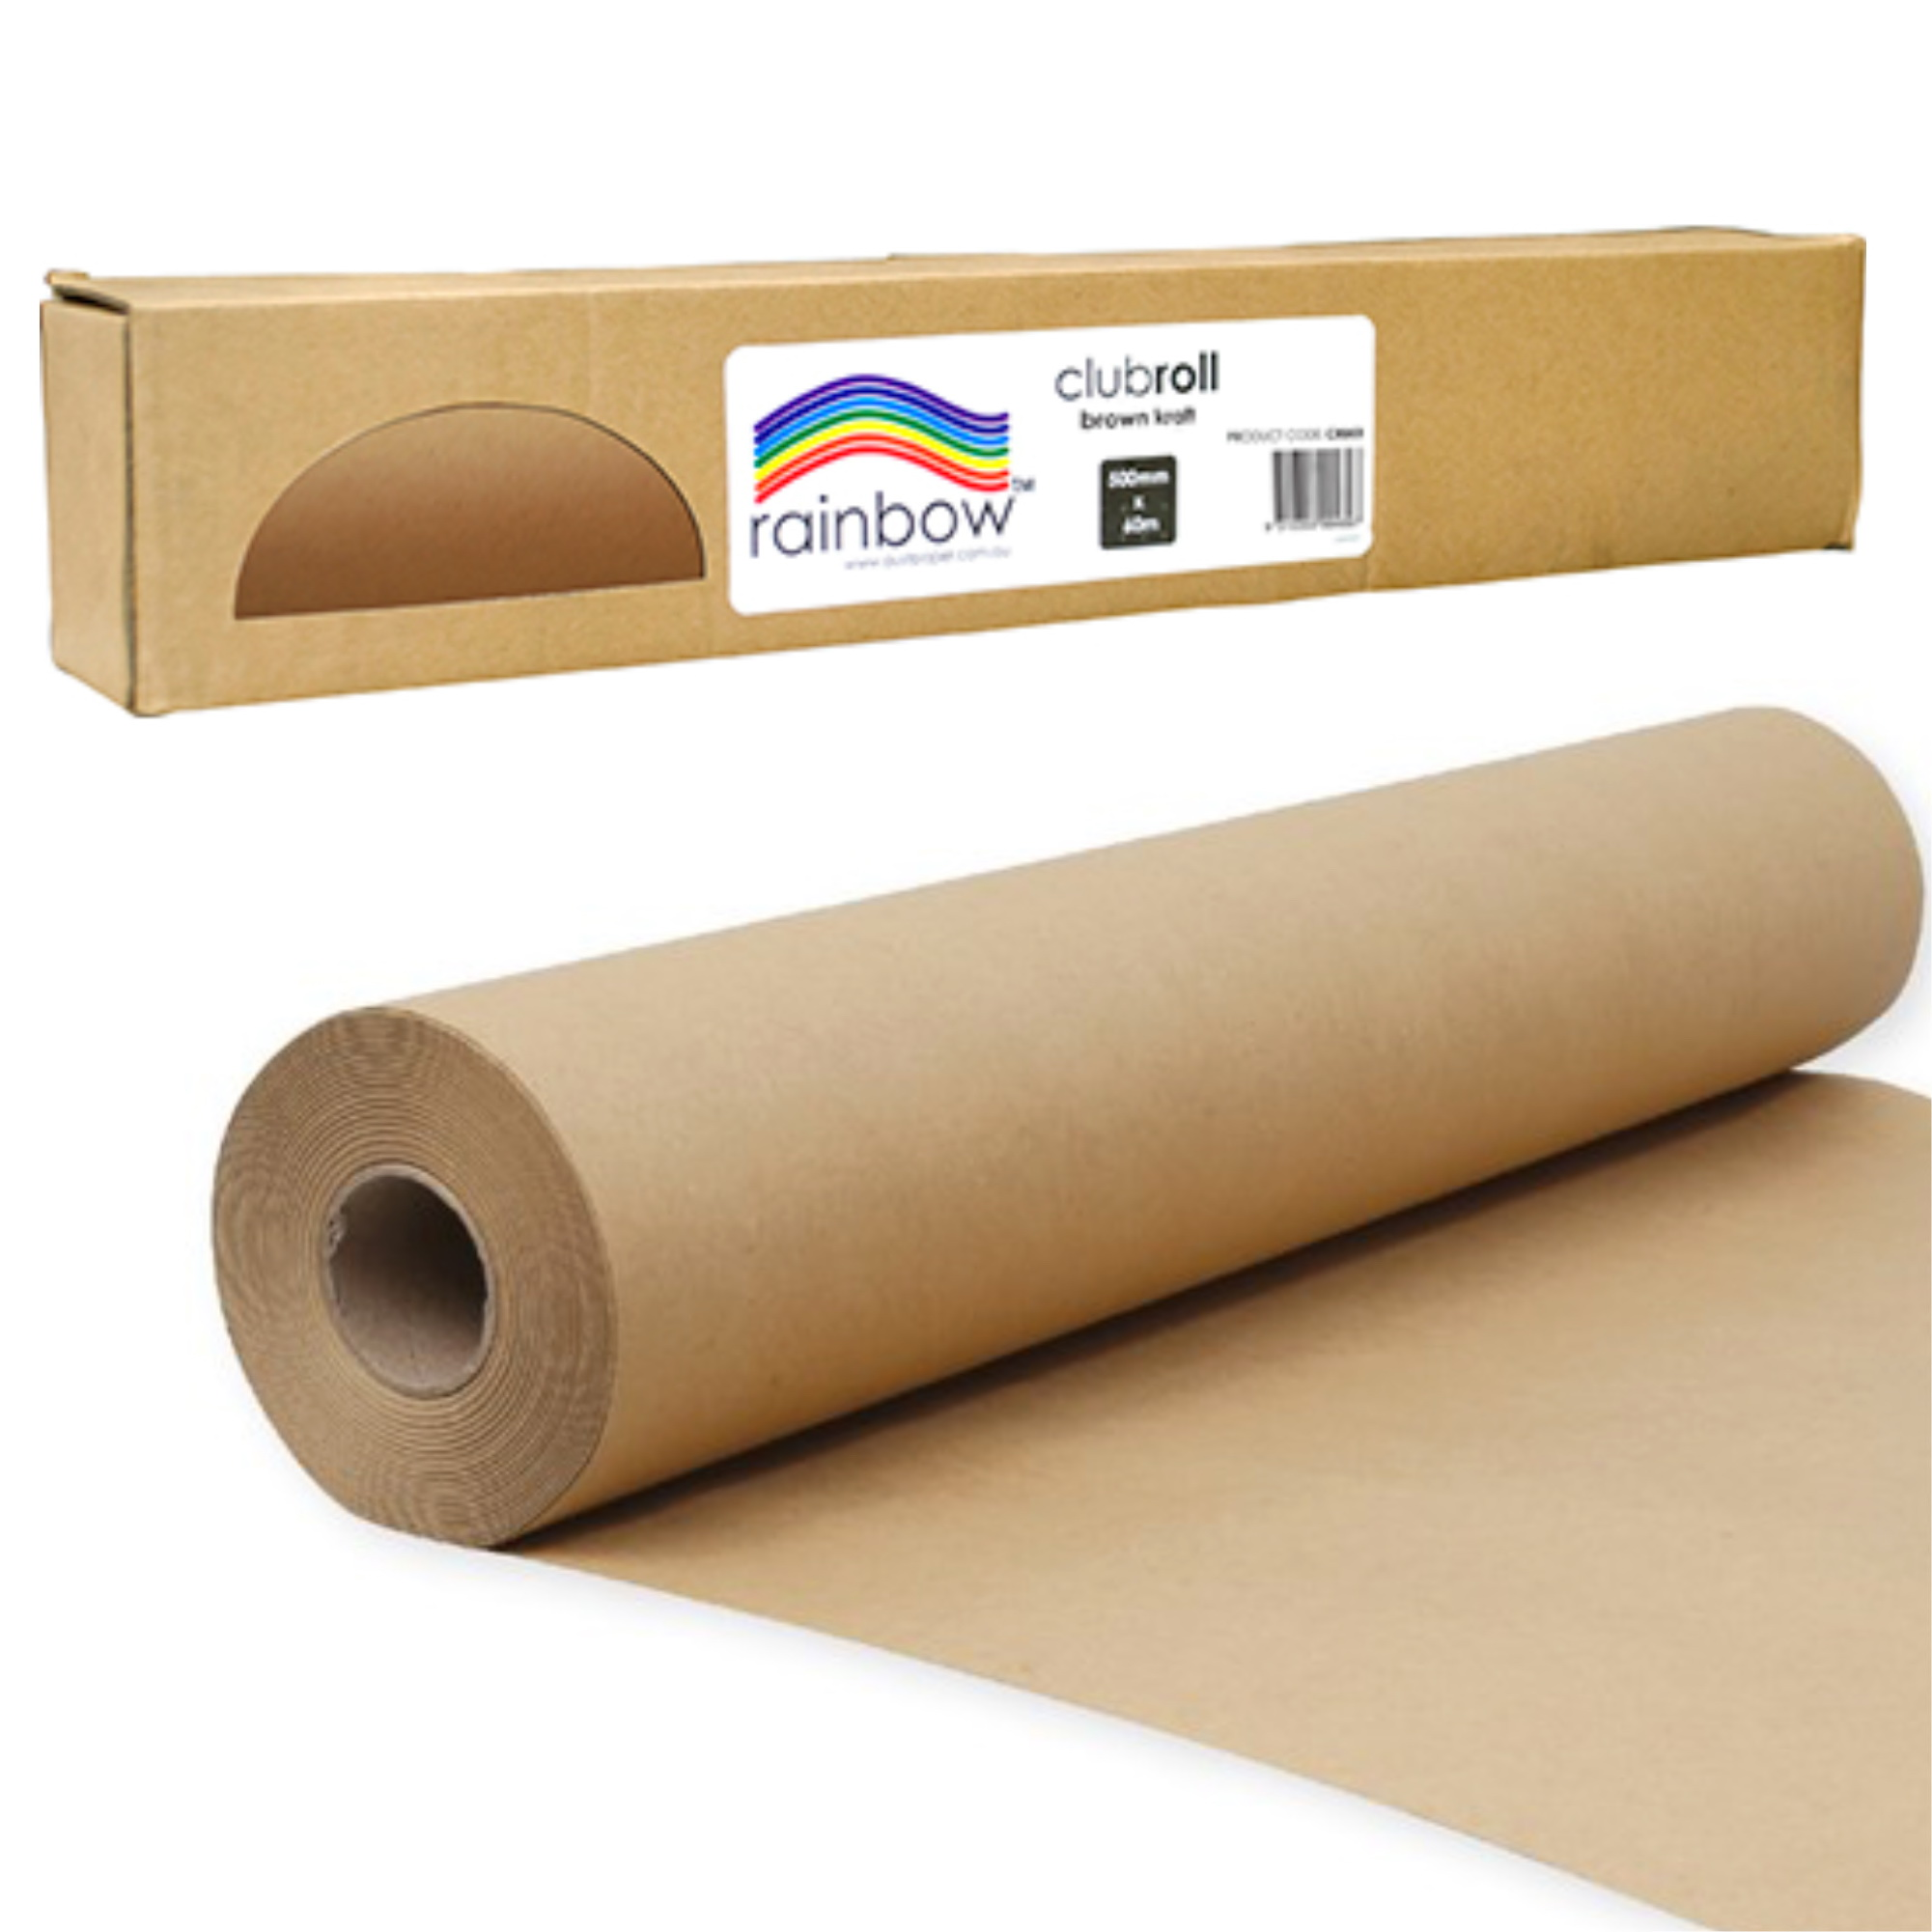 BROWN KRAFT PAPER 70GSM 500MM X 60M in a Dispenser Carton